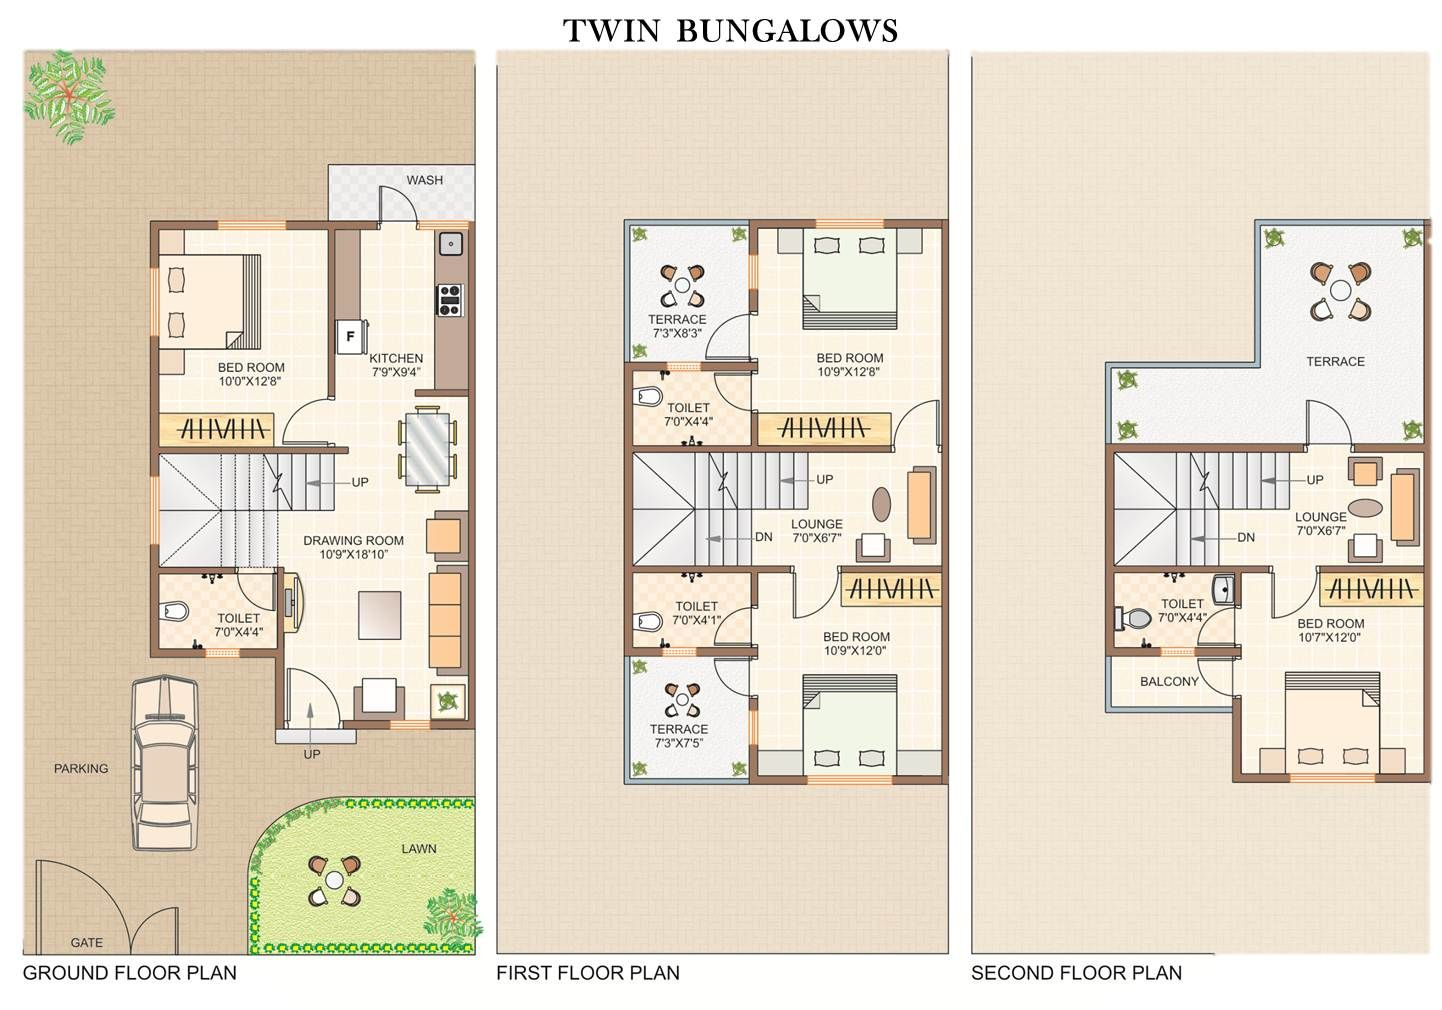 Free Decorating Twin Bungalow Plans छ न Pinterest Bungalow